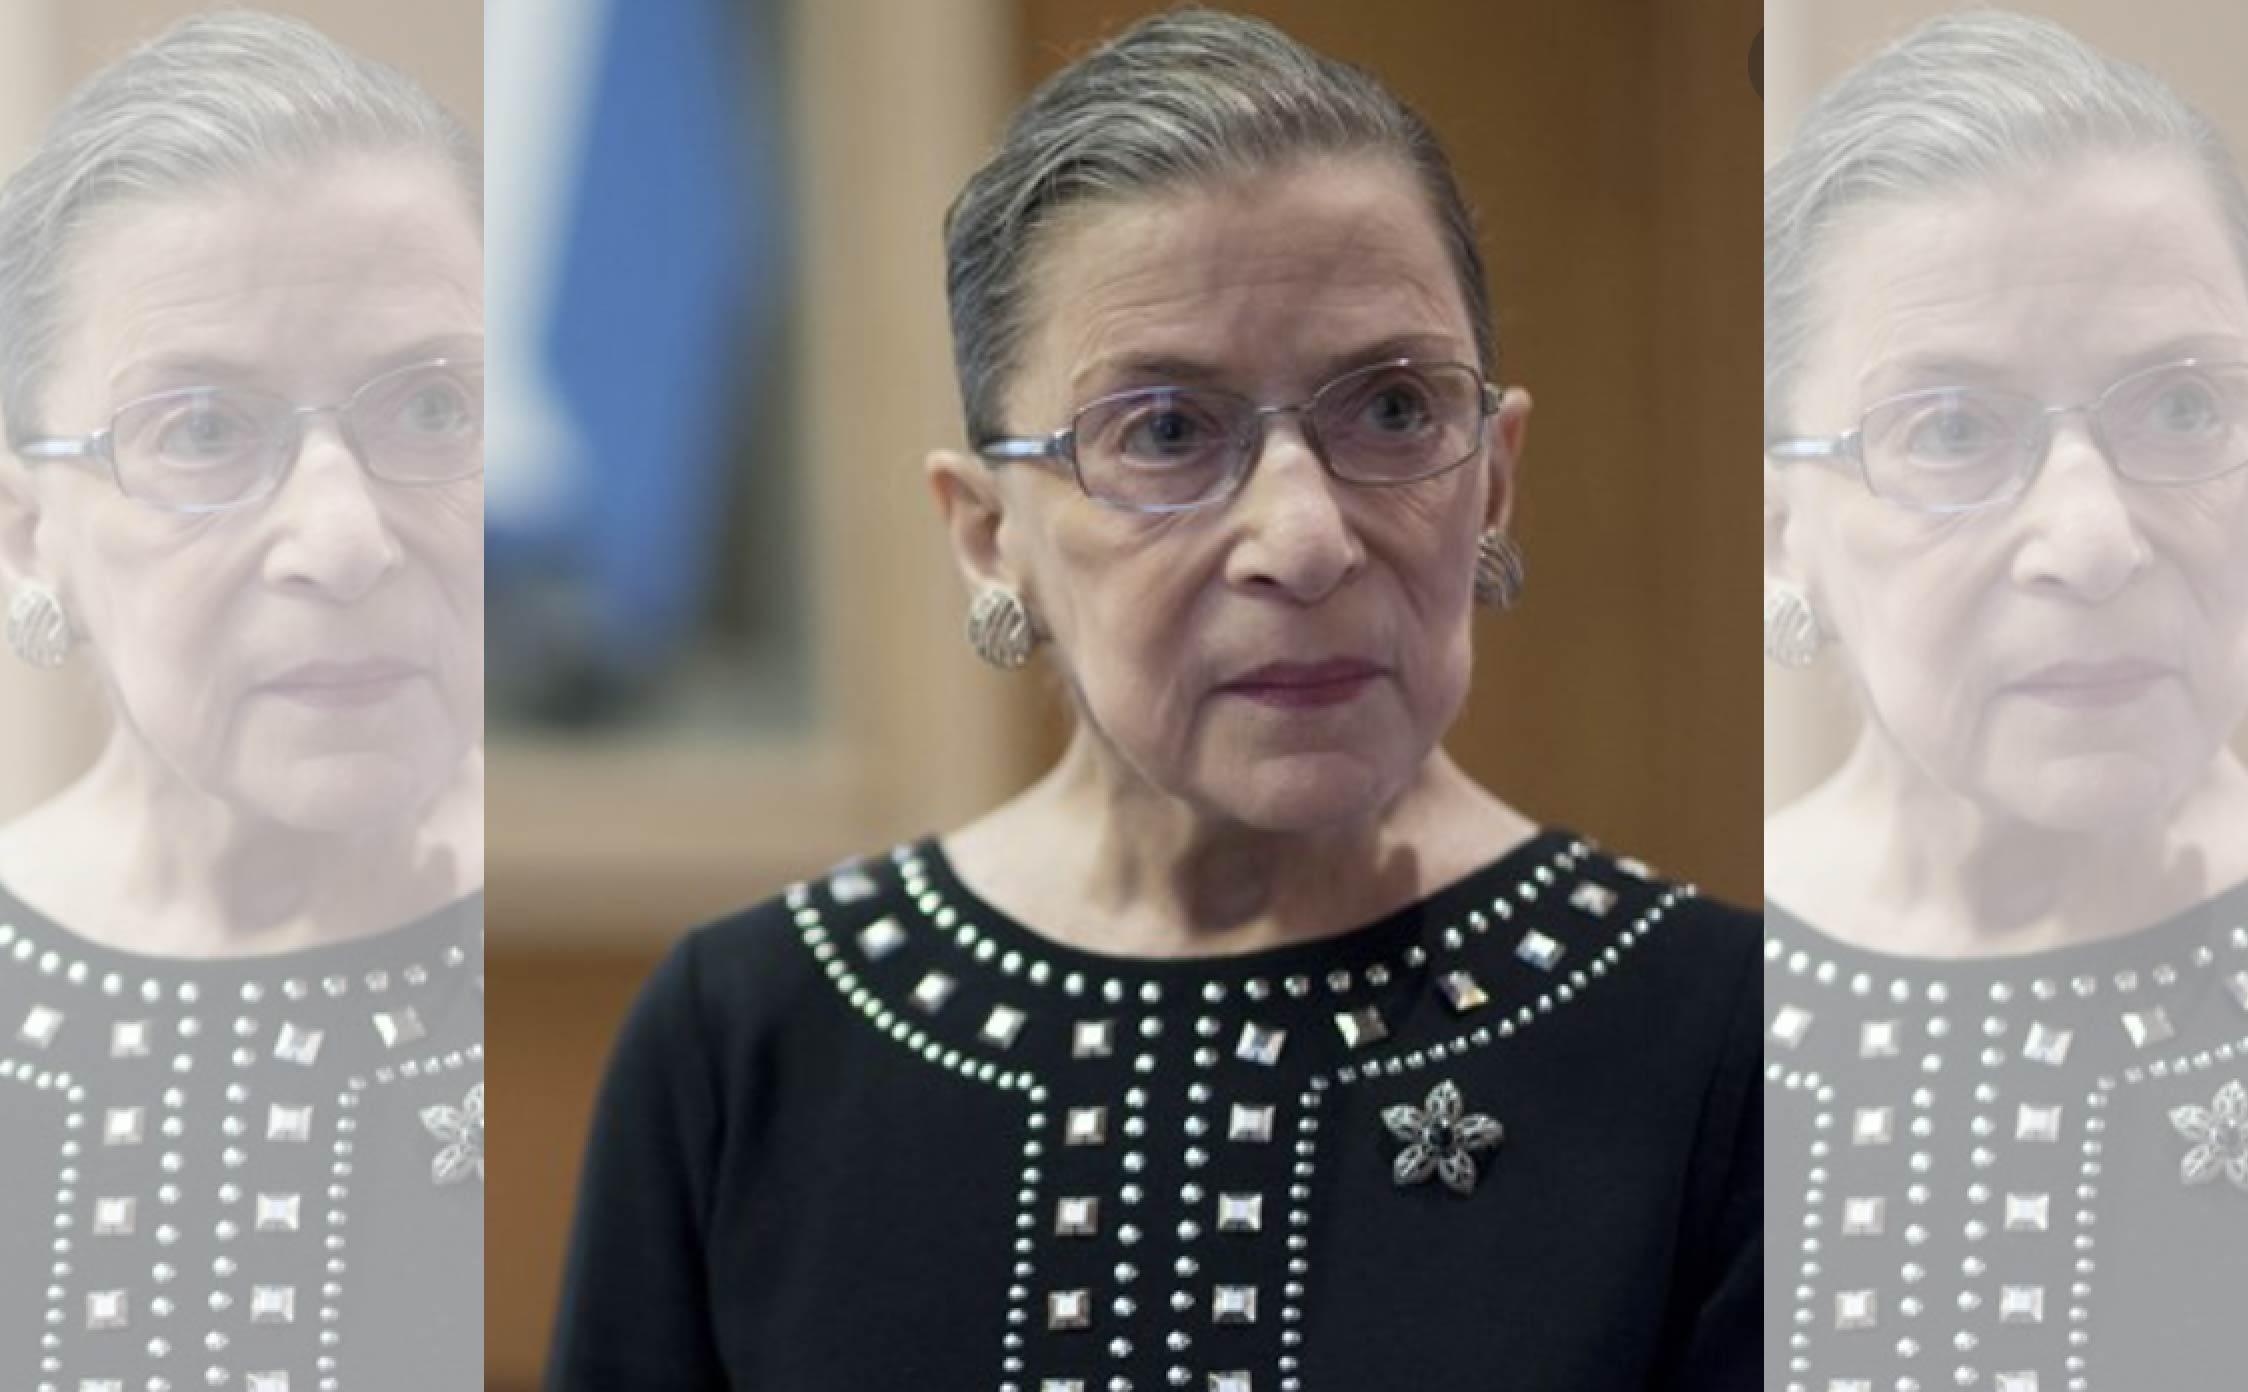 Tragic Details About Ruth Bader Ginsburg's Final Days Are Revealed